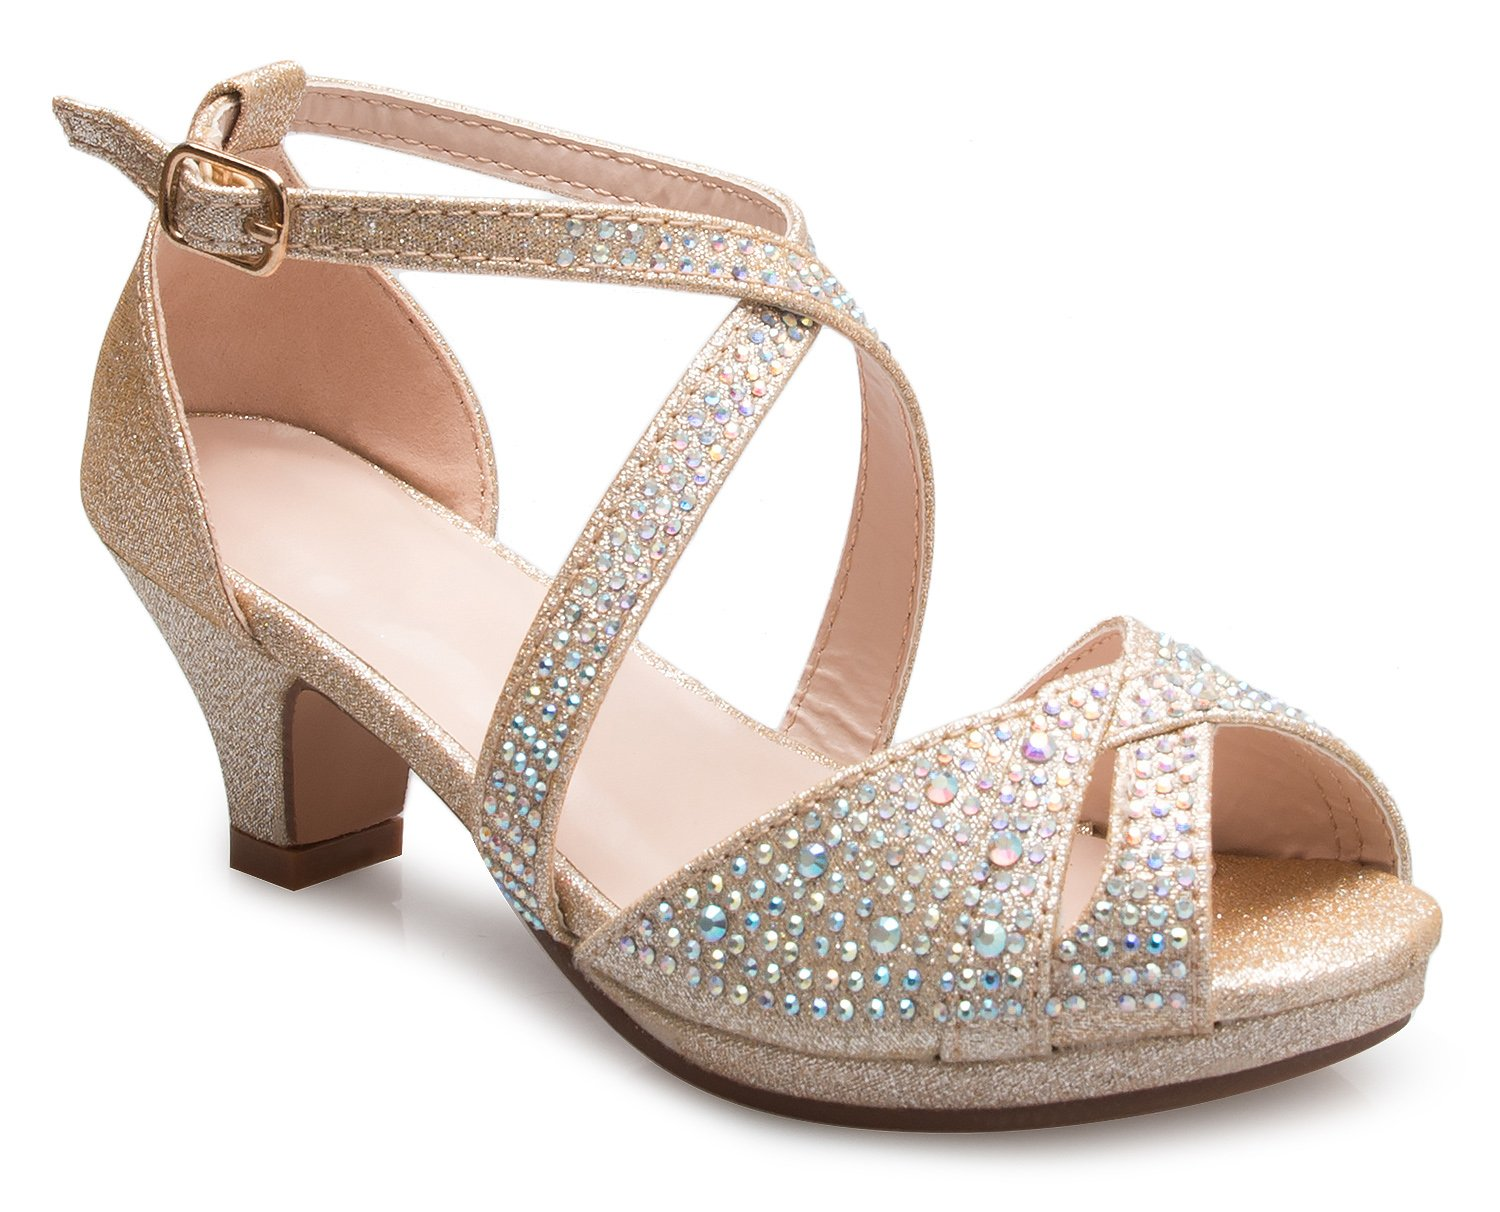 OLIVIA K Girl's Cute Adorable Strappy Glitter Open Toe Heel Sandals - Adjustable Buckle